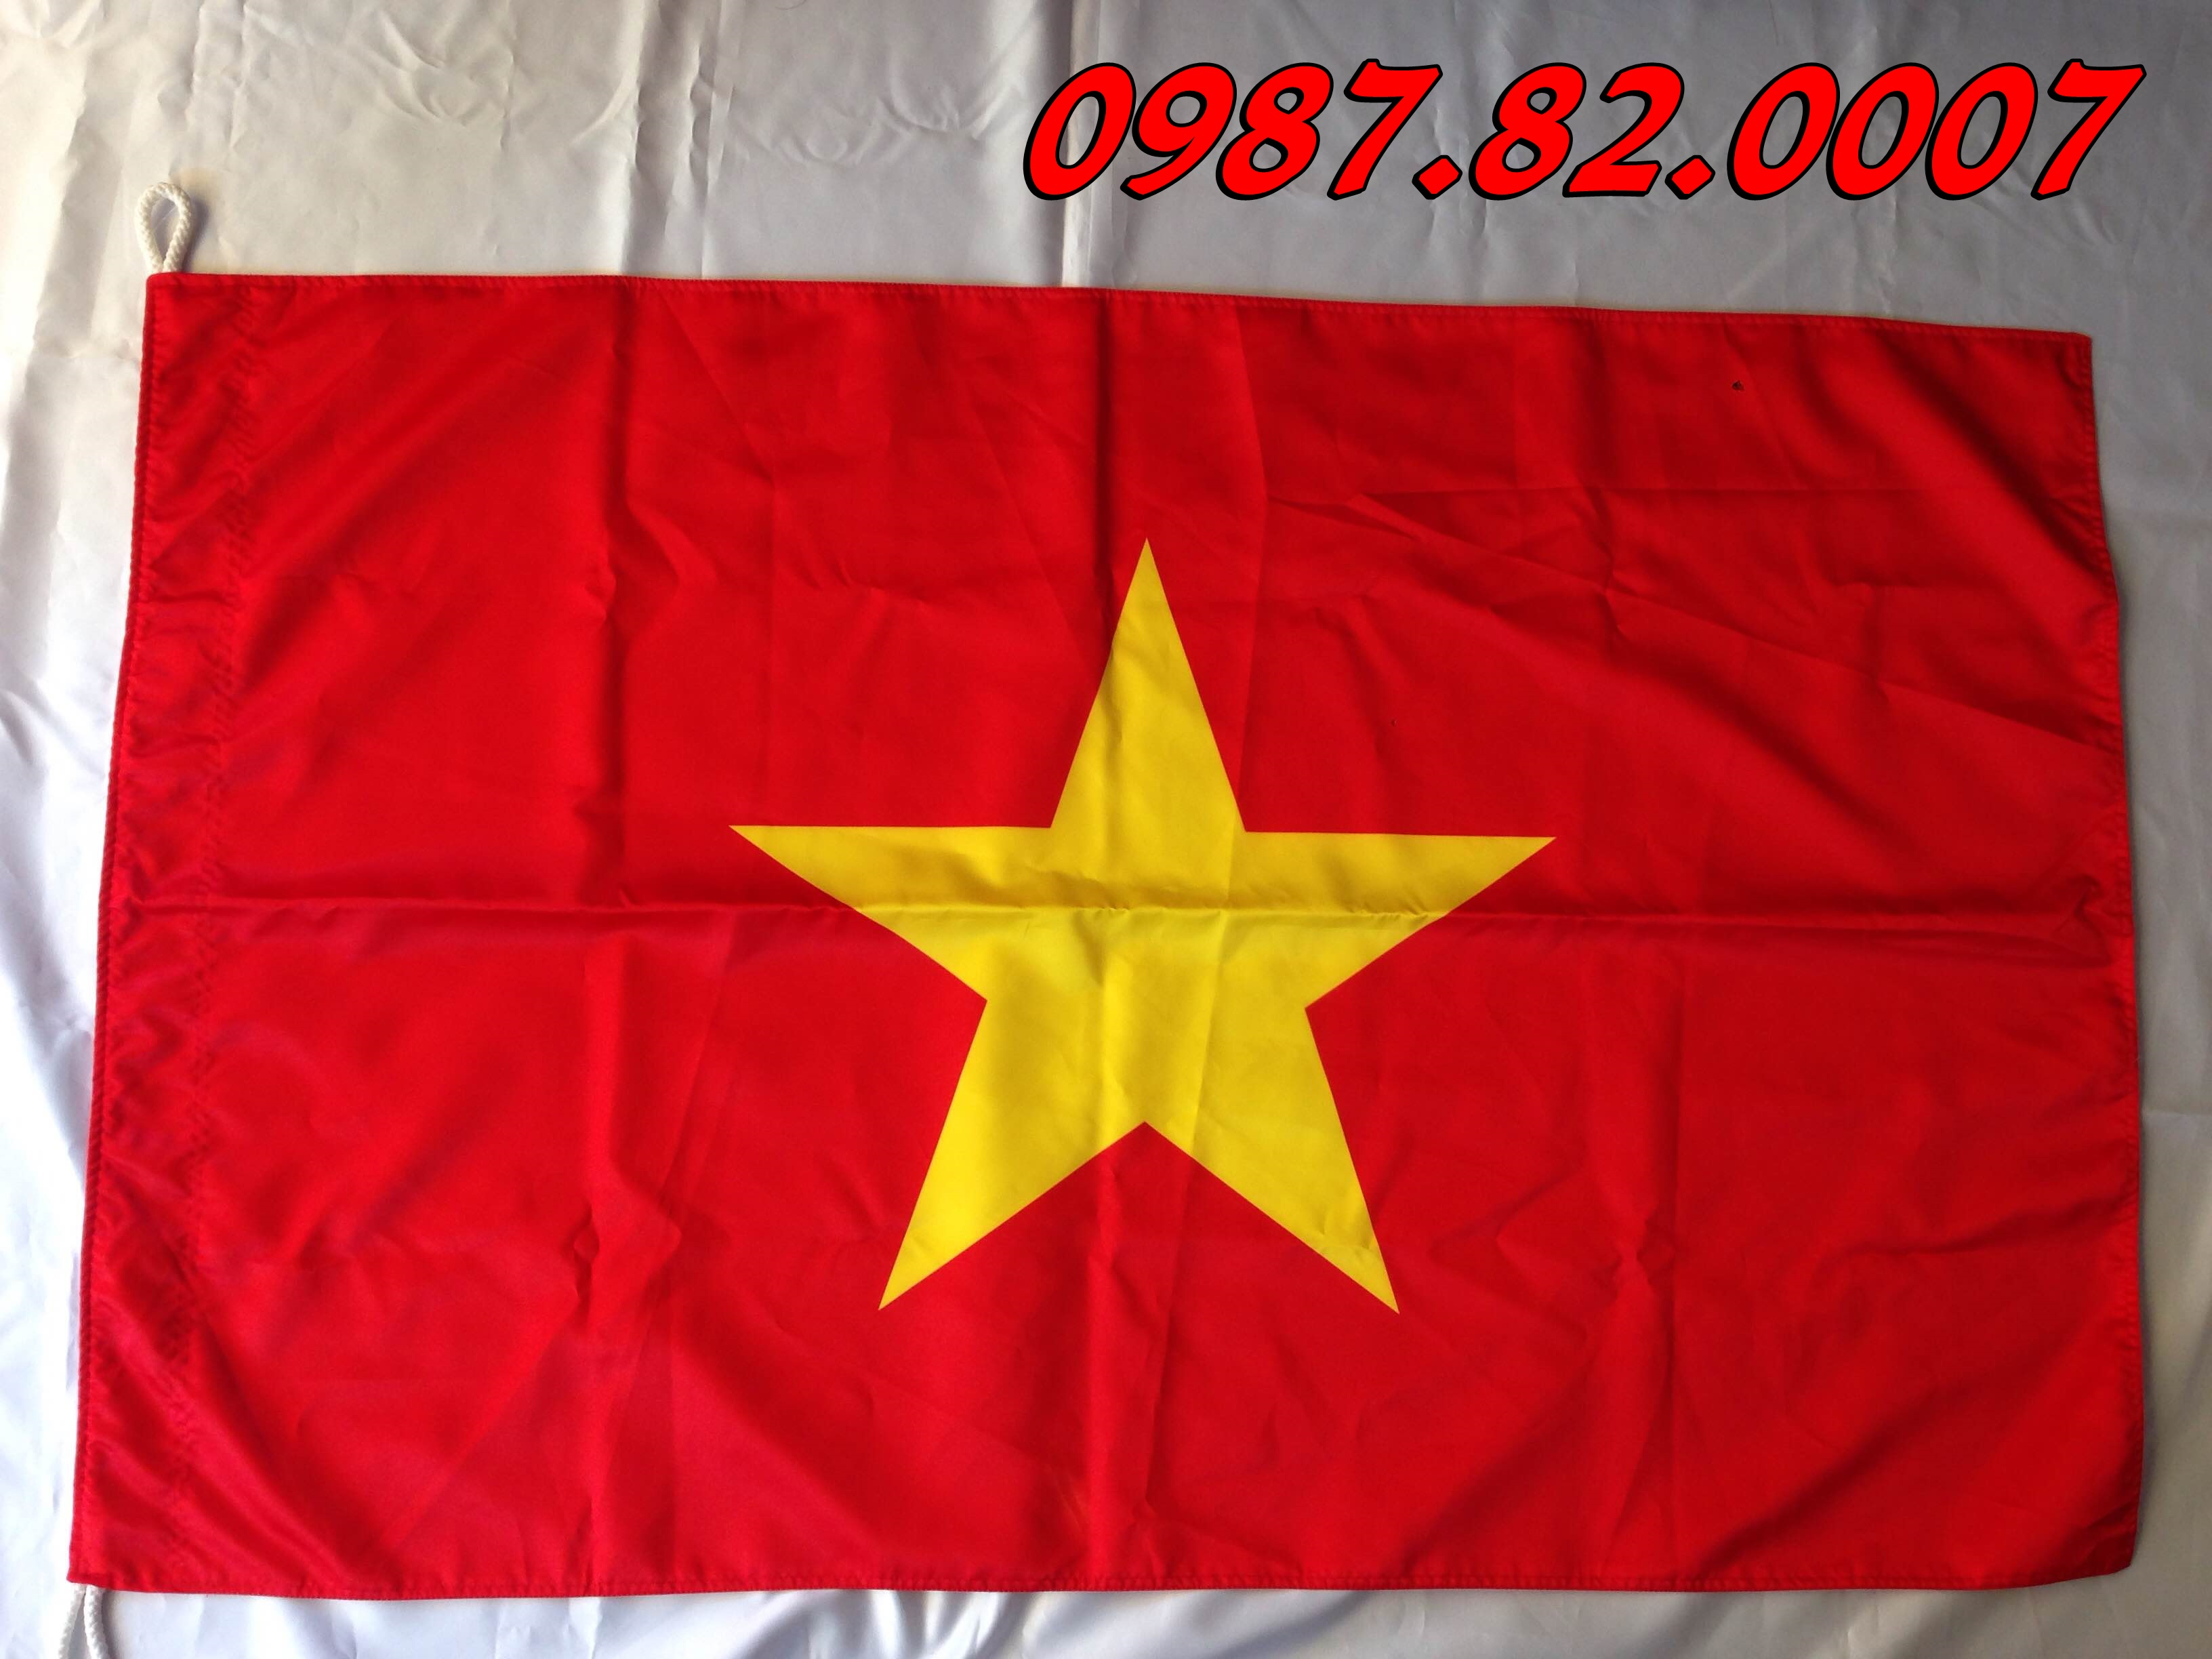 co-to-quoc-in-cao-cap-1978